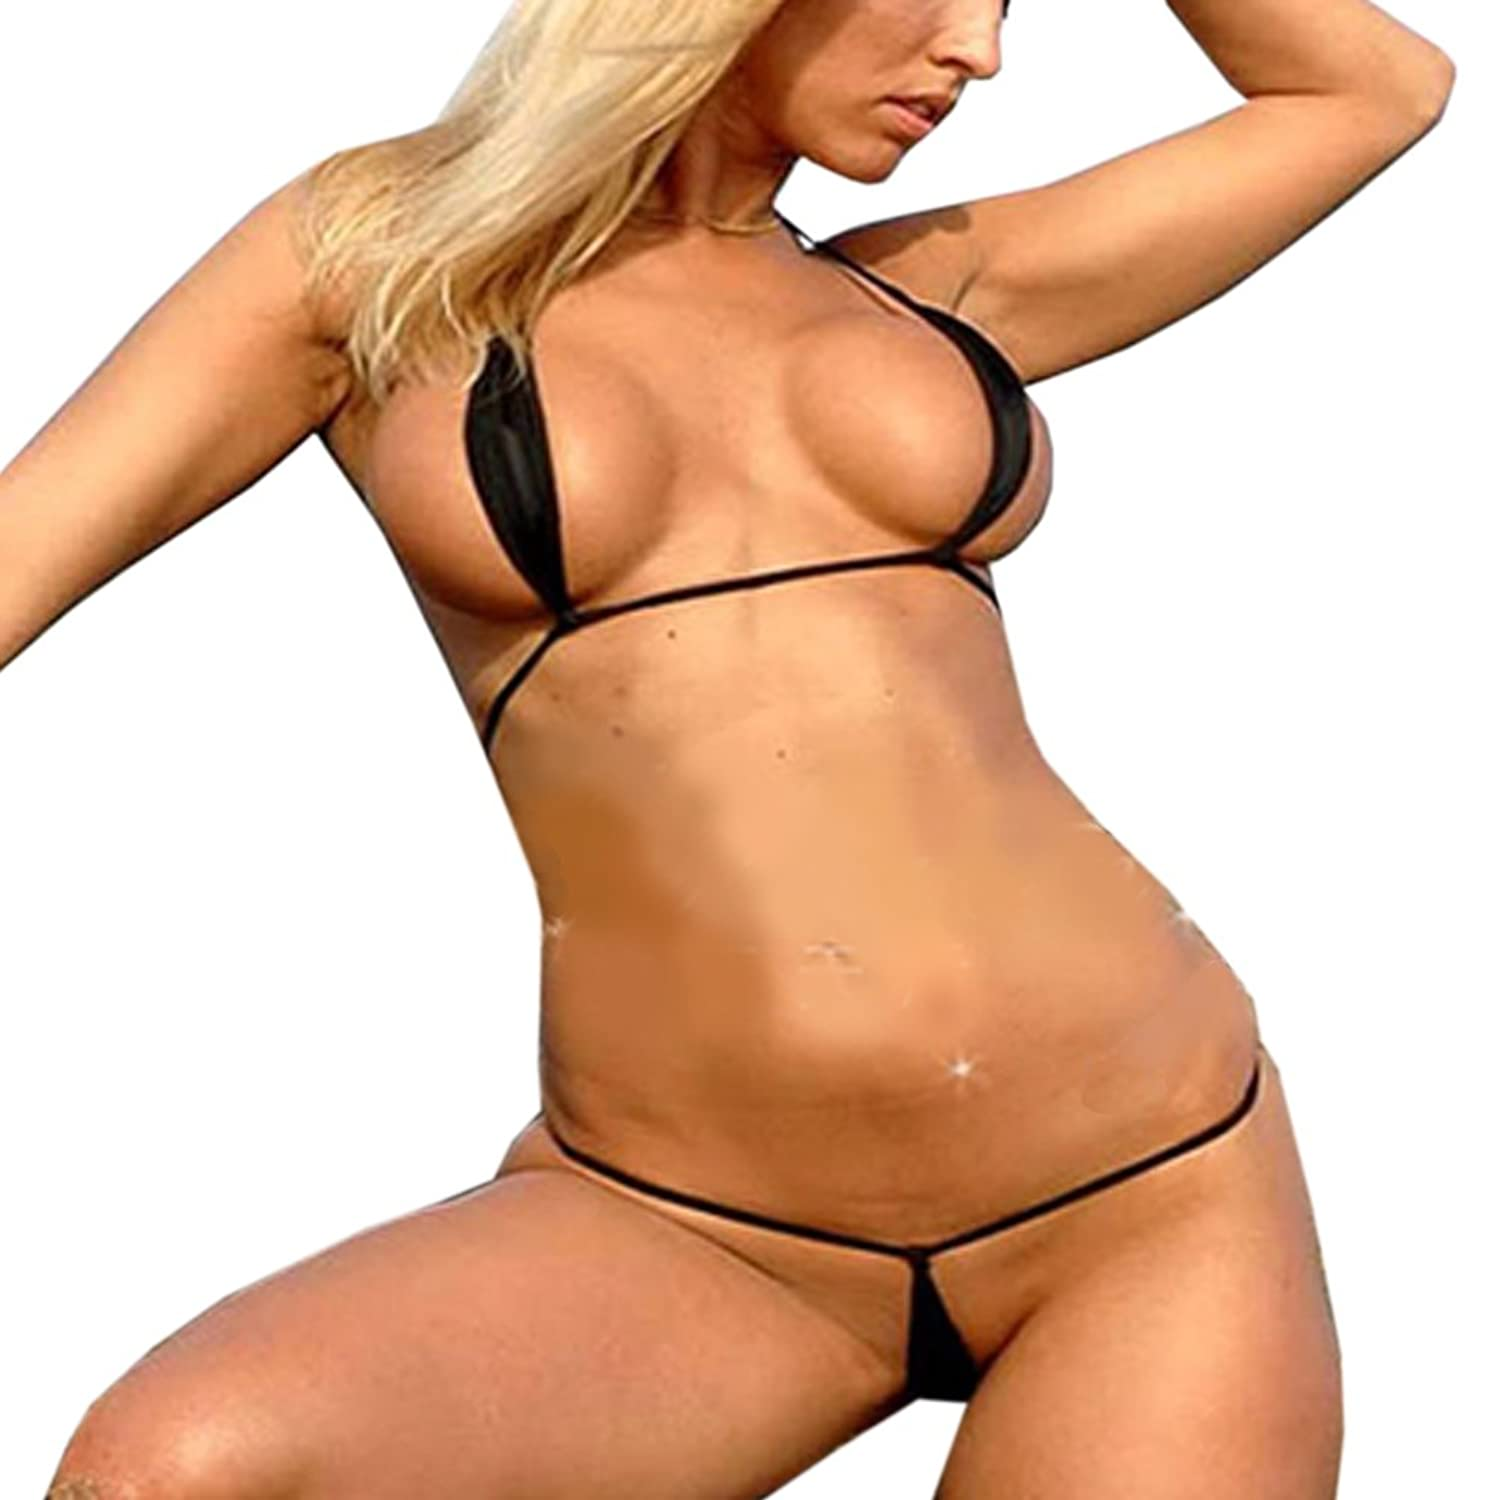 Blonde Sexy Model with sexy gstring bikini